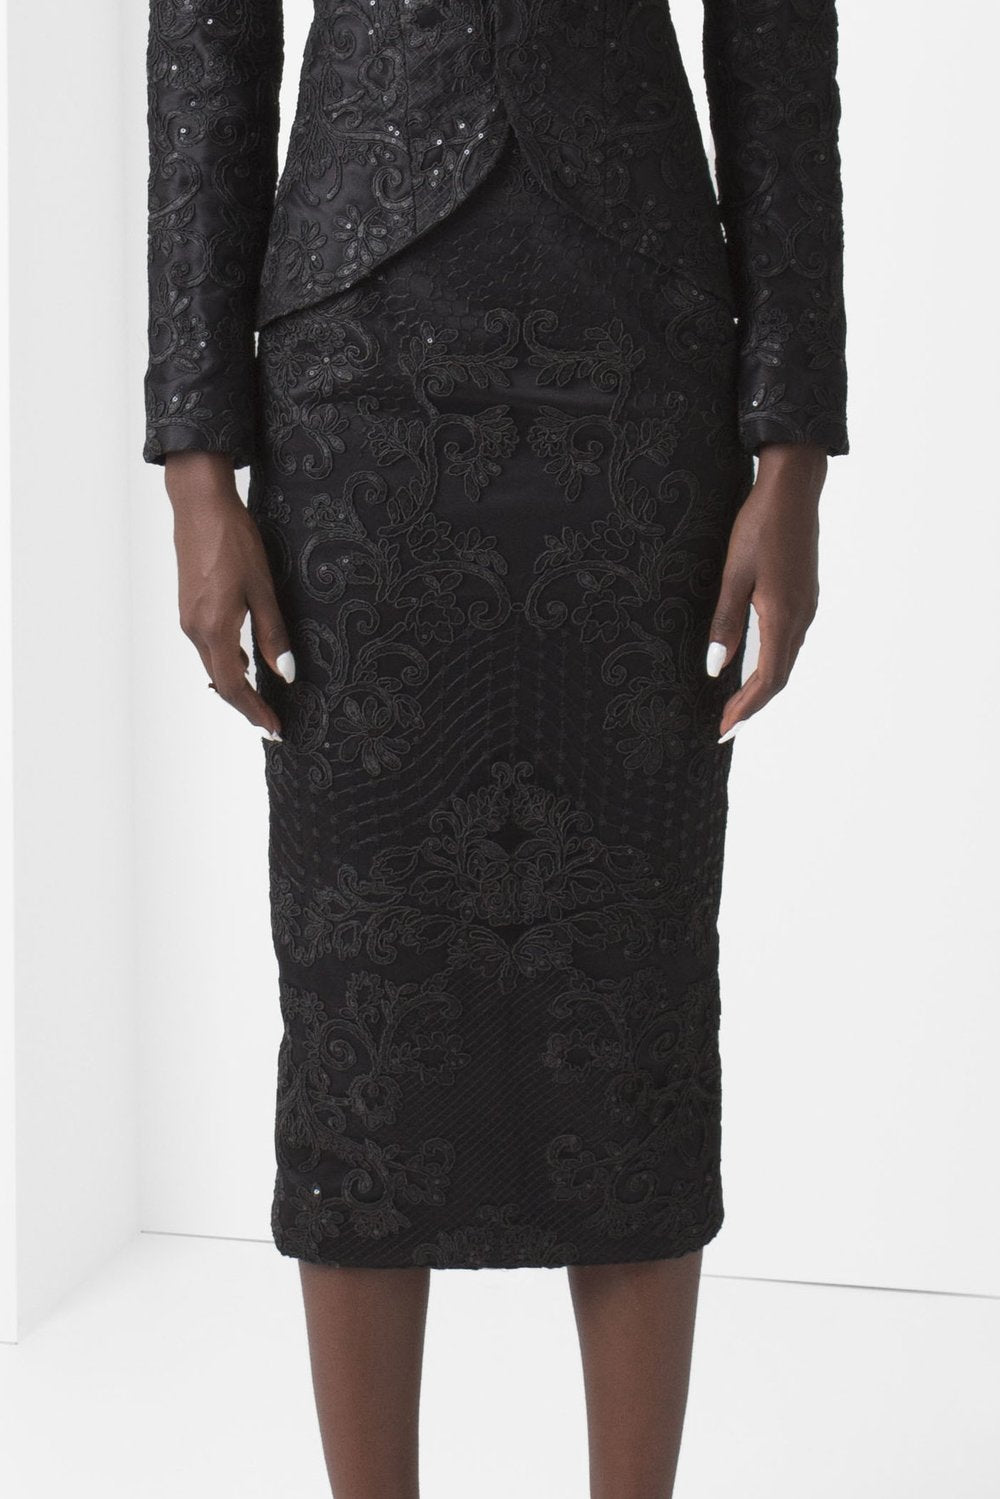 Black High-Rise Embroidered Lace Pencil Skirt with Ruffle Detail - pacorogiene